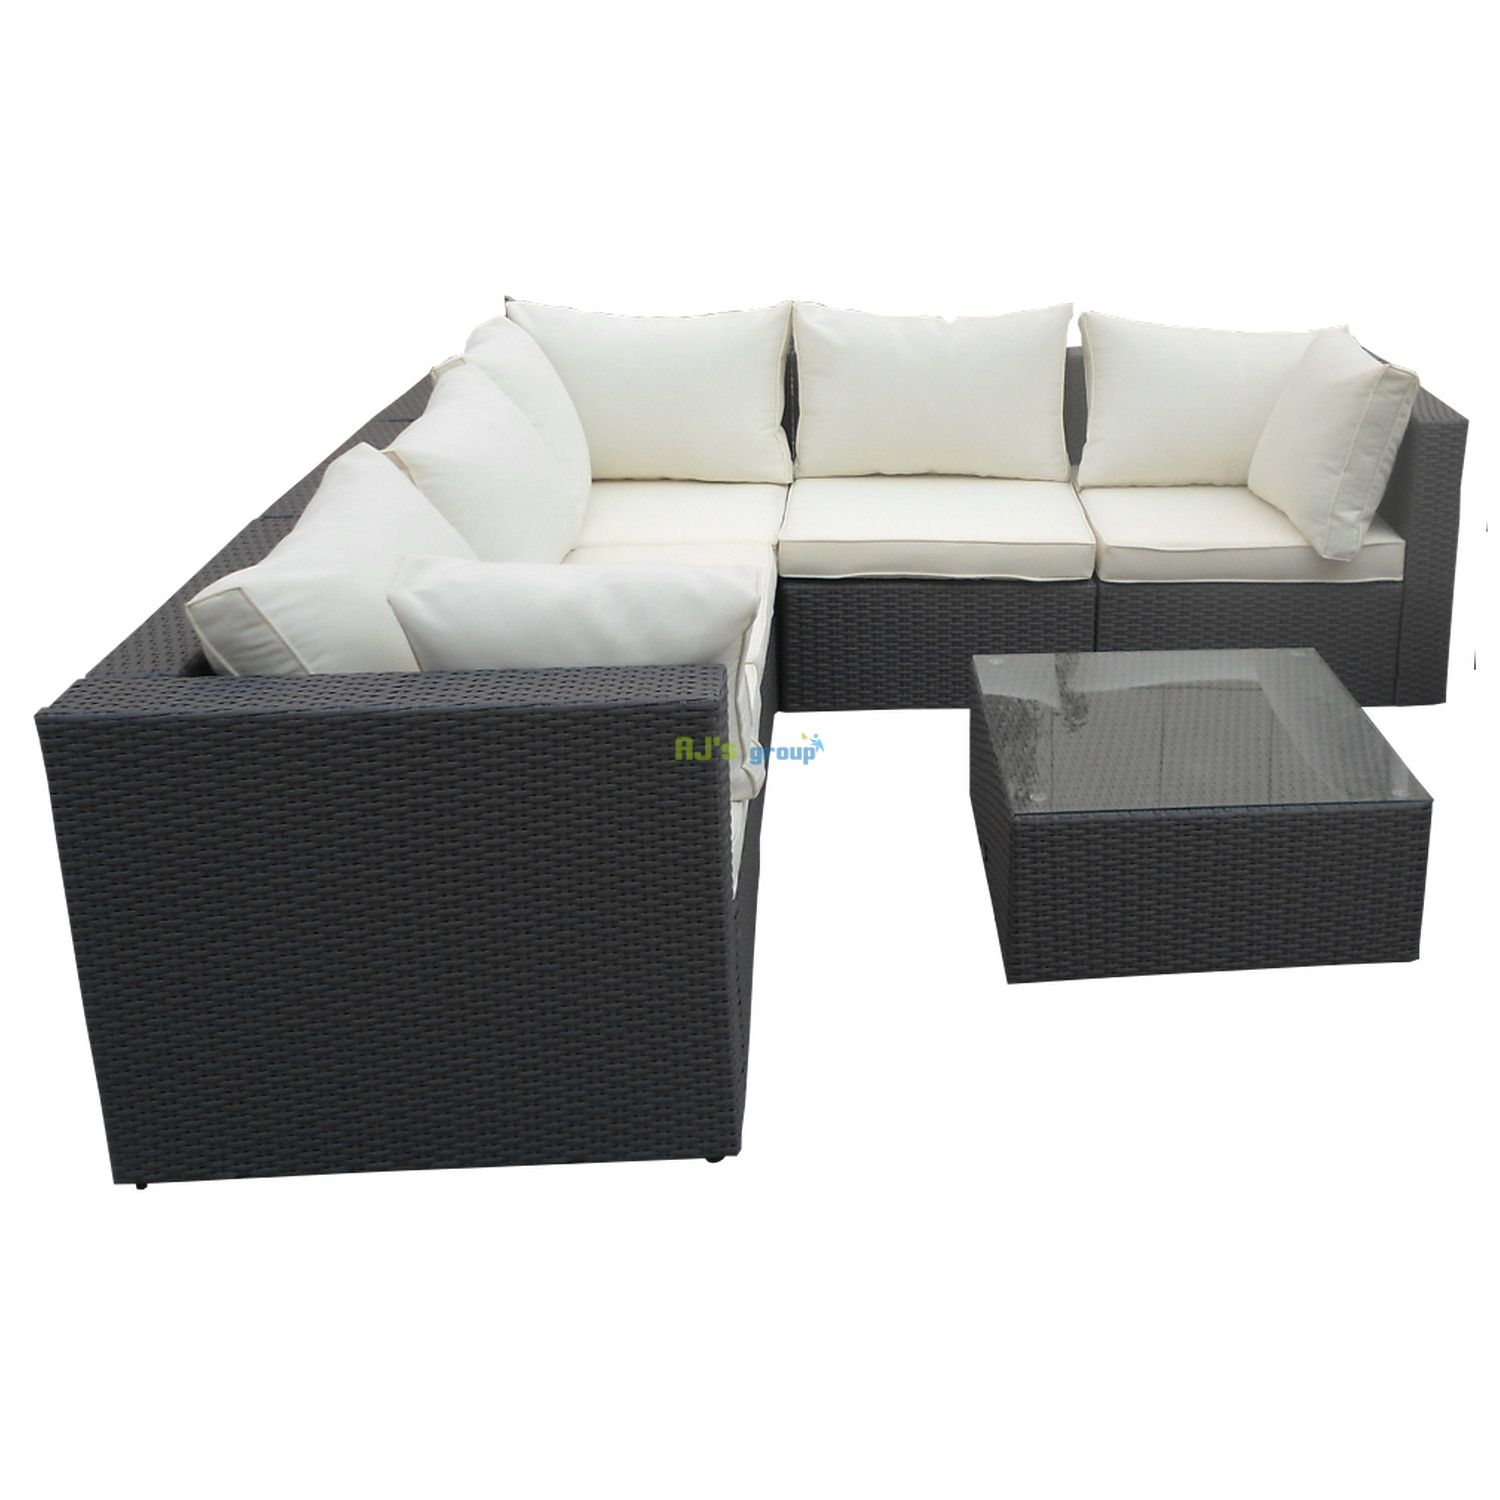 rattan gartenm bel lounge set. Black Bedroom Furniture Sets. Home Design Ideas